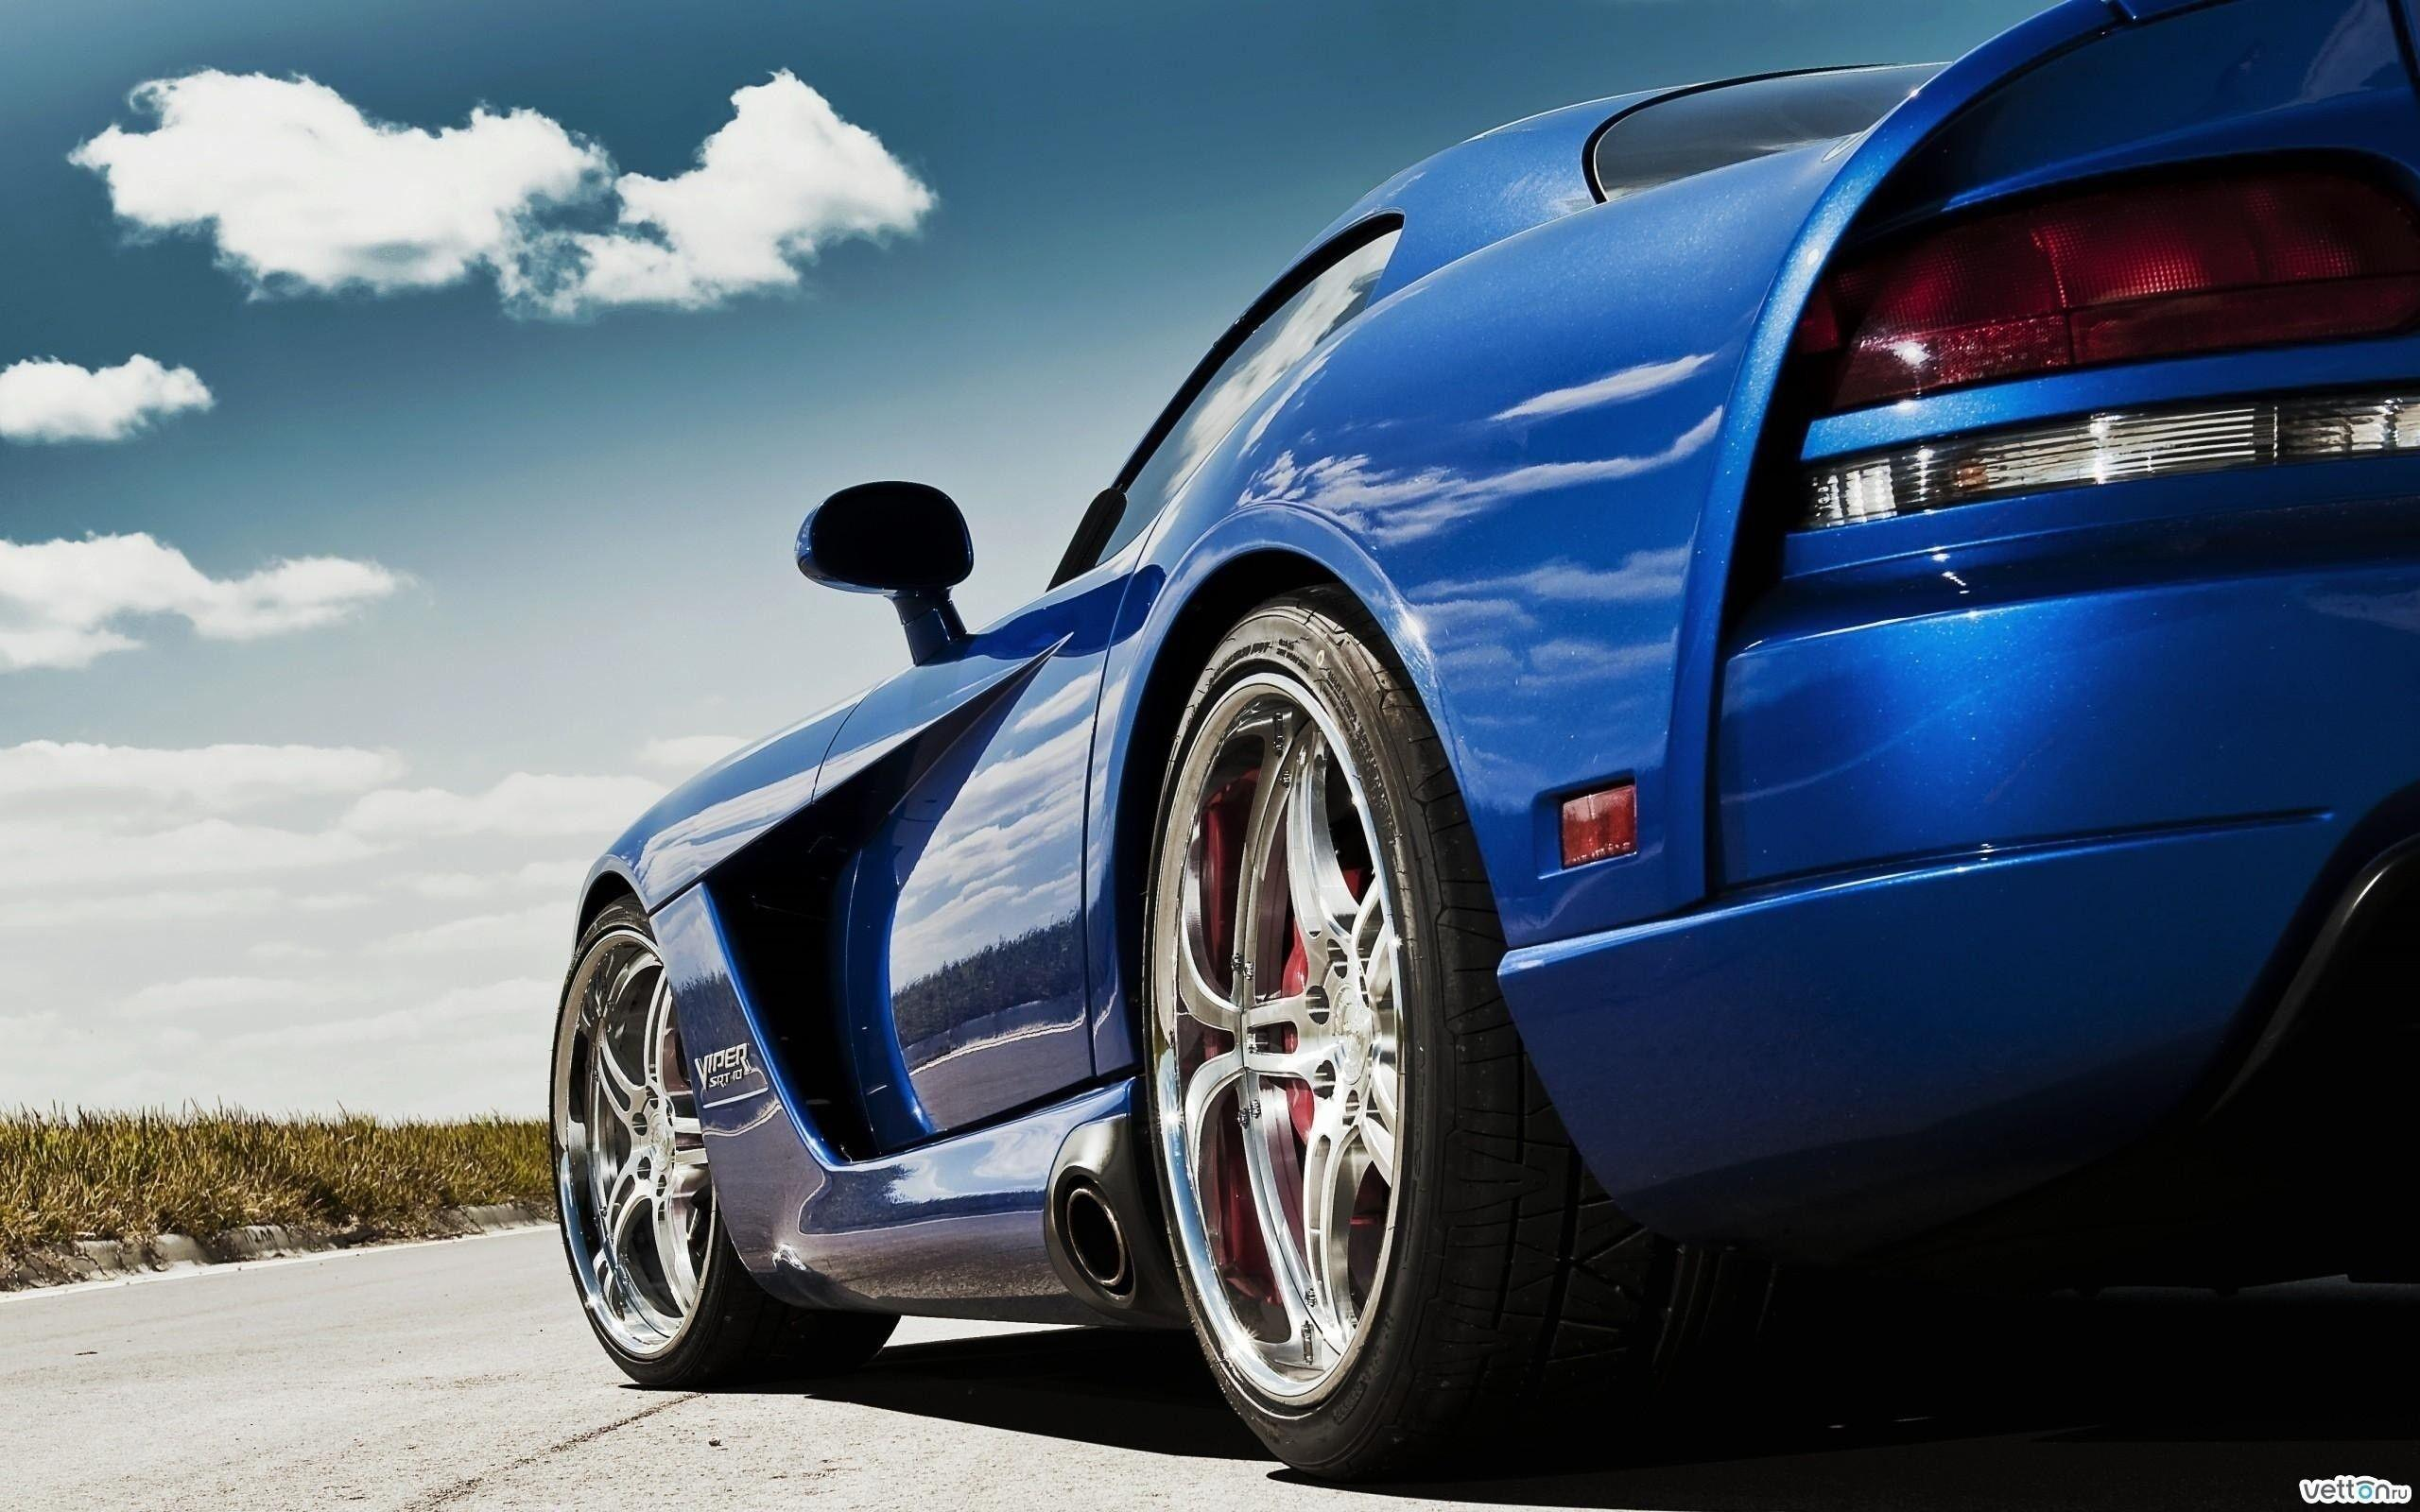 Blue Cars Wallpapers Wallpaper Cave